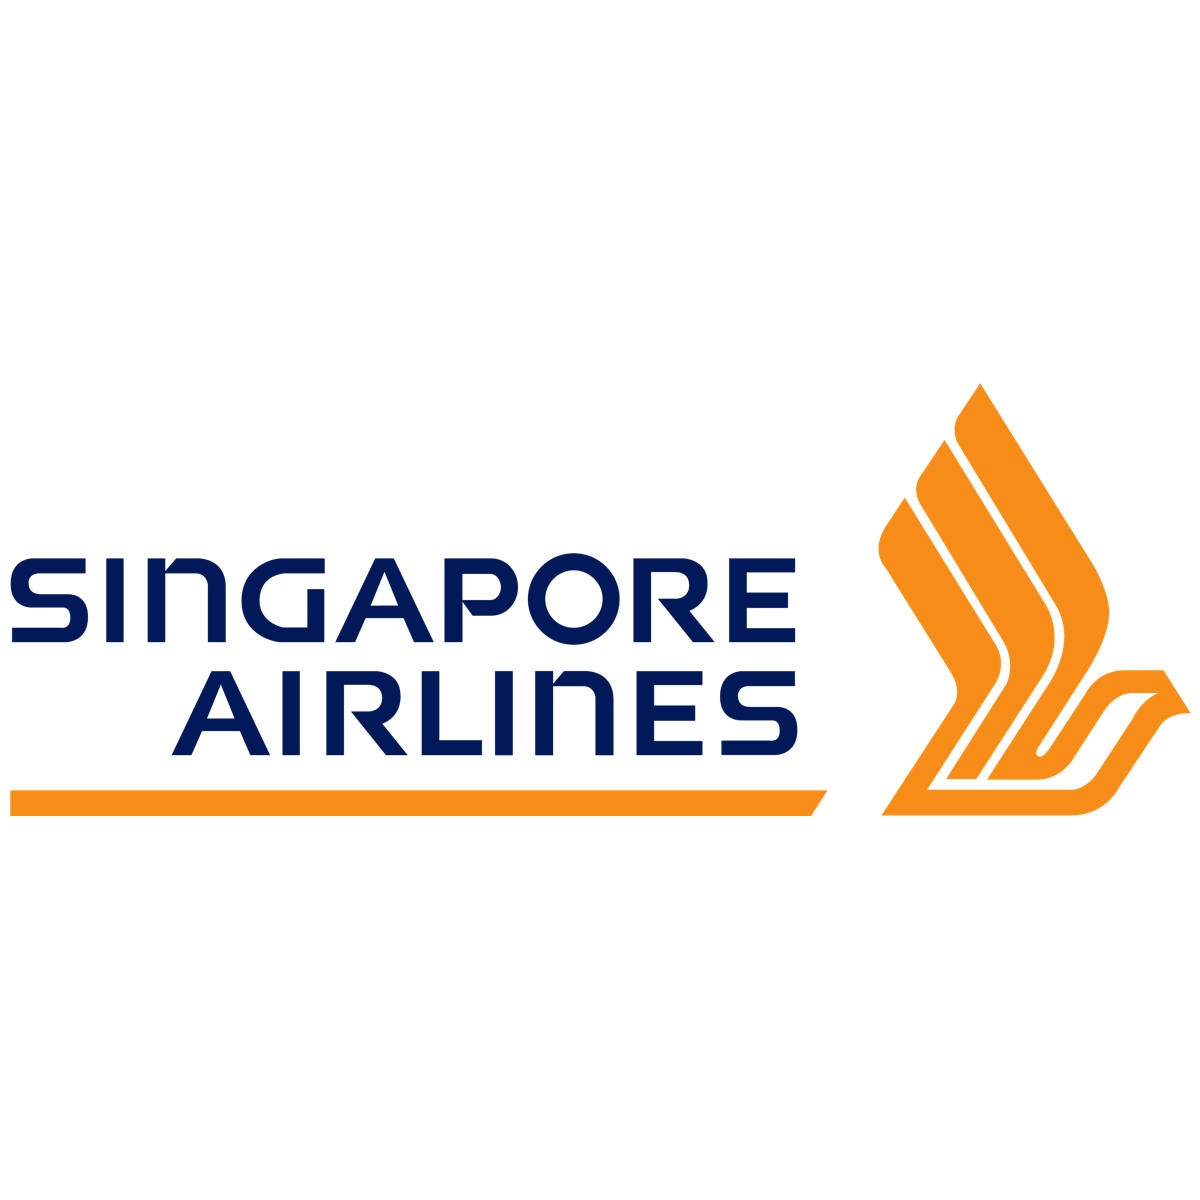 Singapore Airlines - CIMB Research 2017-05-19: Facing Risk From Higher Oil Prices